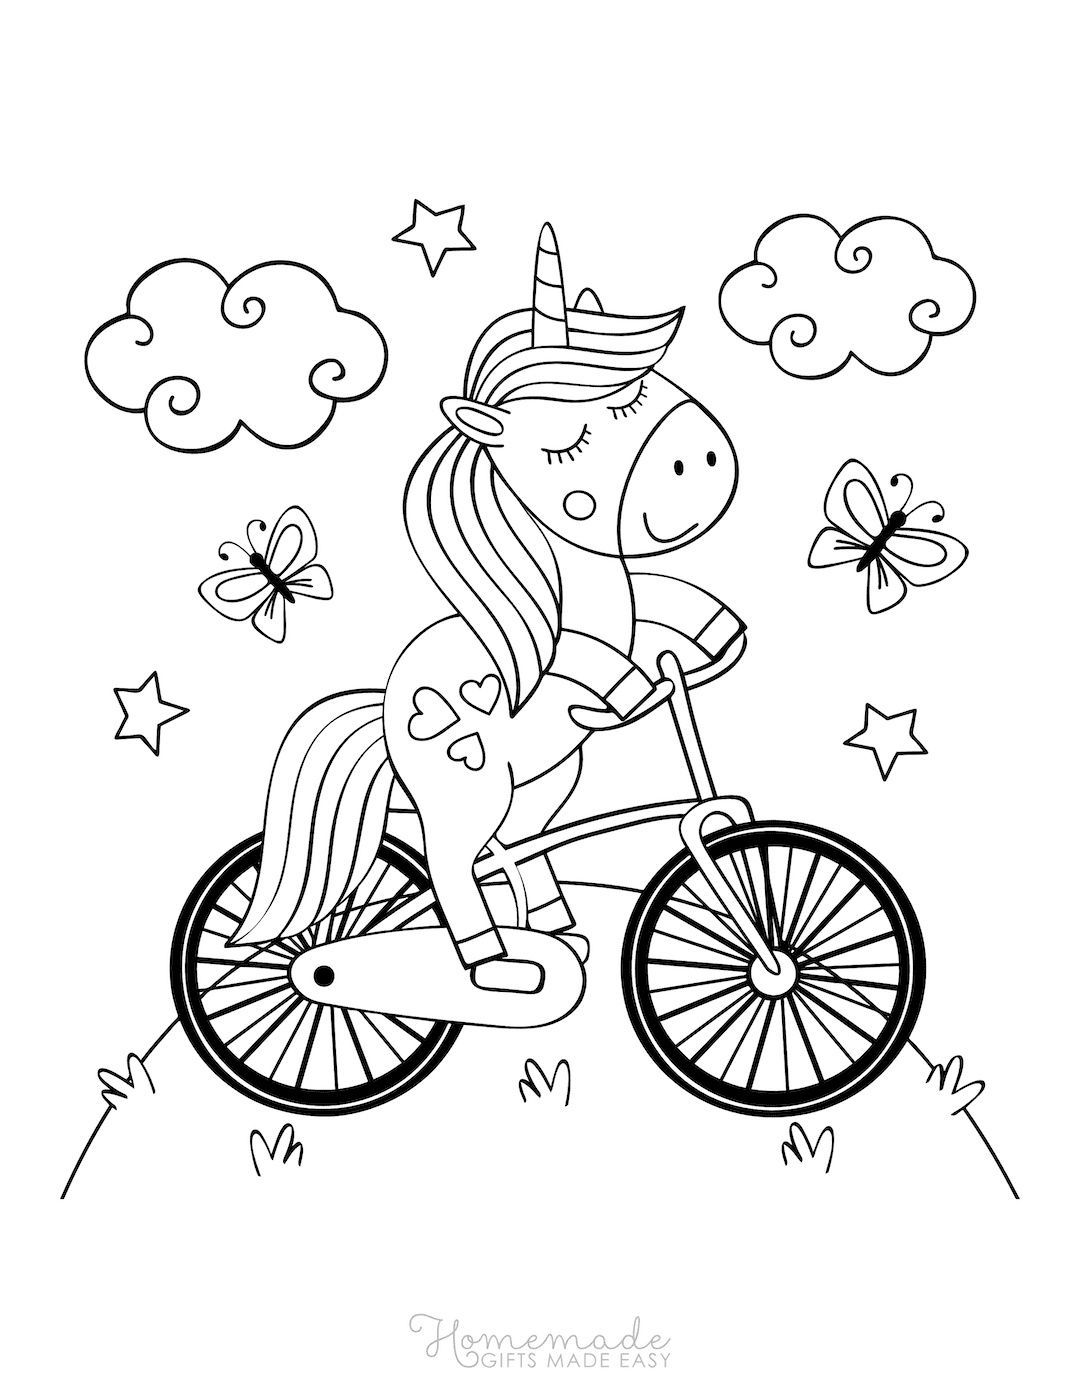 75 Magical Unicorn Coloring Pages For Kids Adults Free Printables Unicorn Coloring Pages Happy Birthday Coloring Pages Coloring Pages